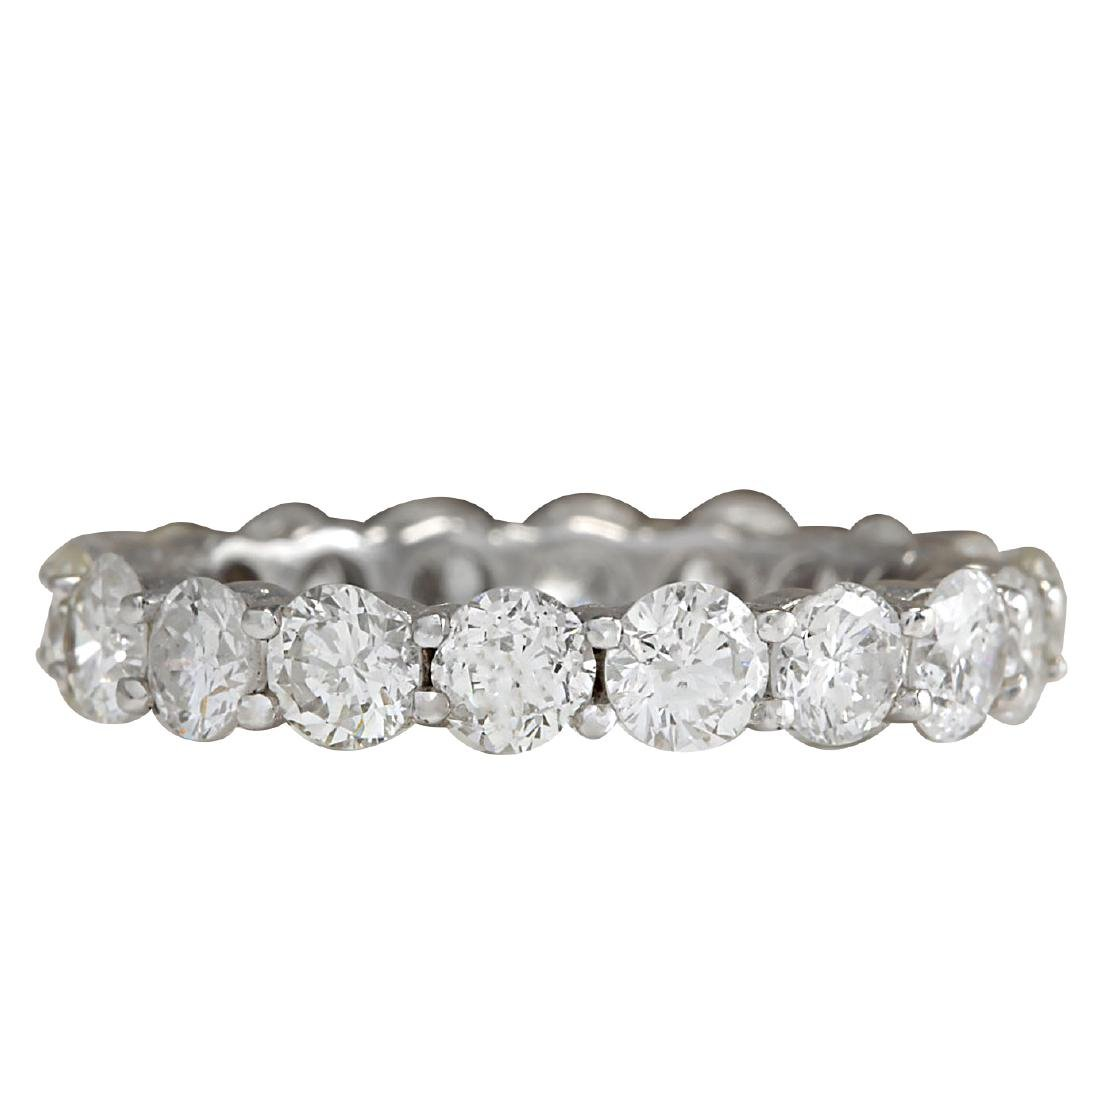 2.70Ct Natural Diamond Ring In 18K Solid White Gold